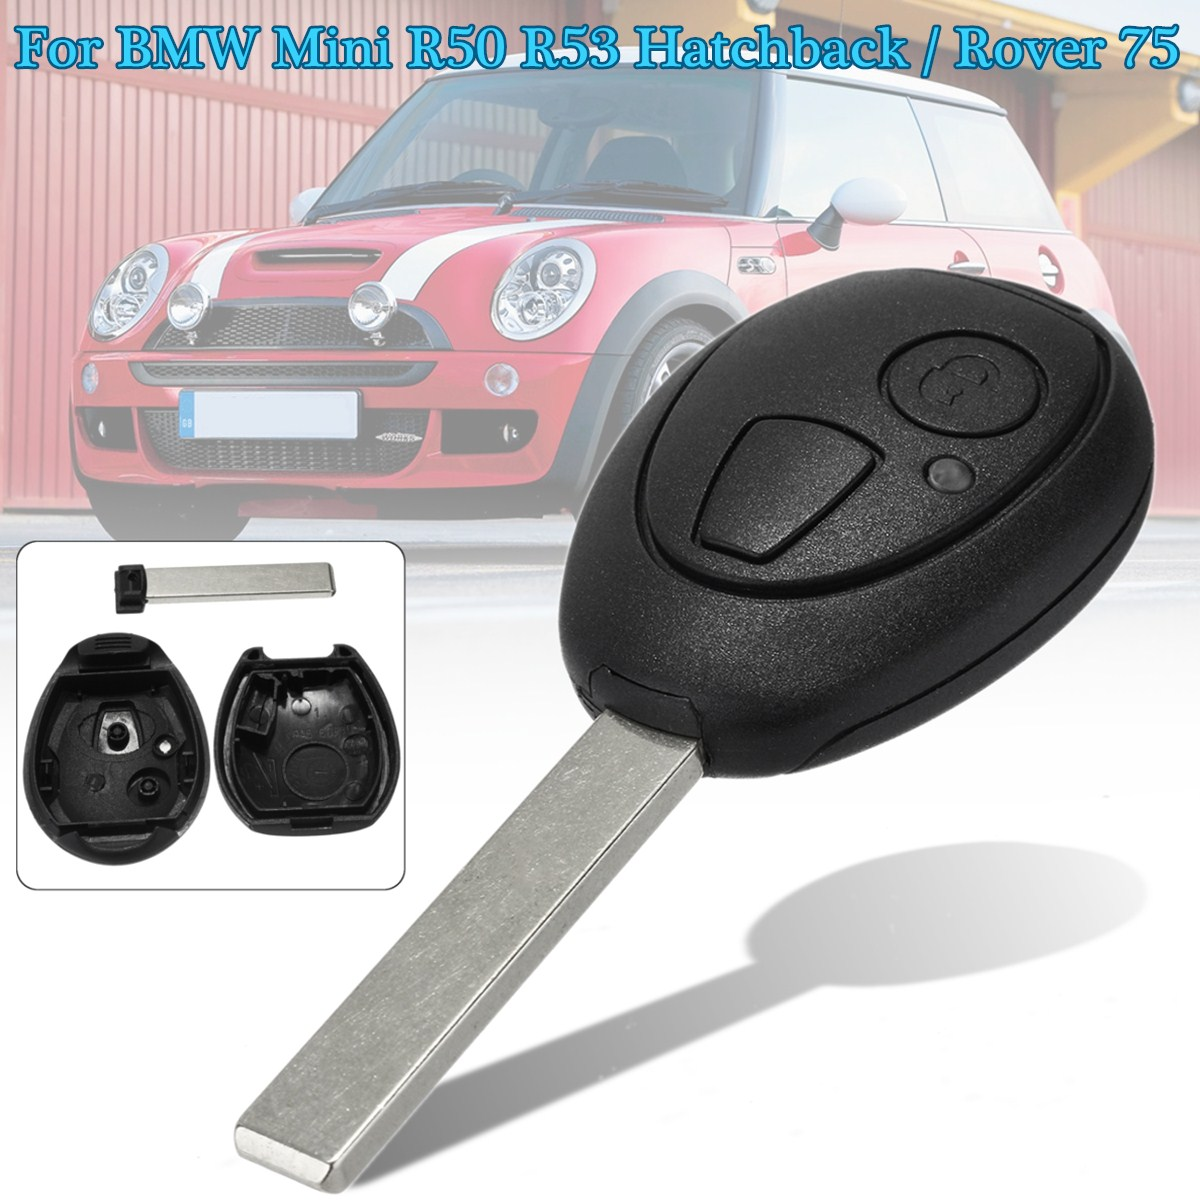 2 Buttons Remote Key Case Fob Shell for BMW Mini ONE Cooper R50 R53 01-080